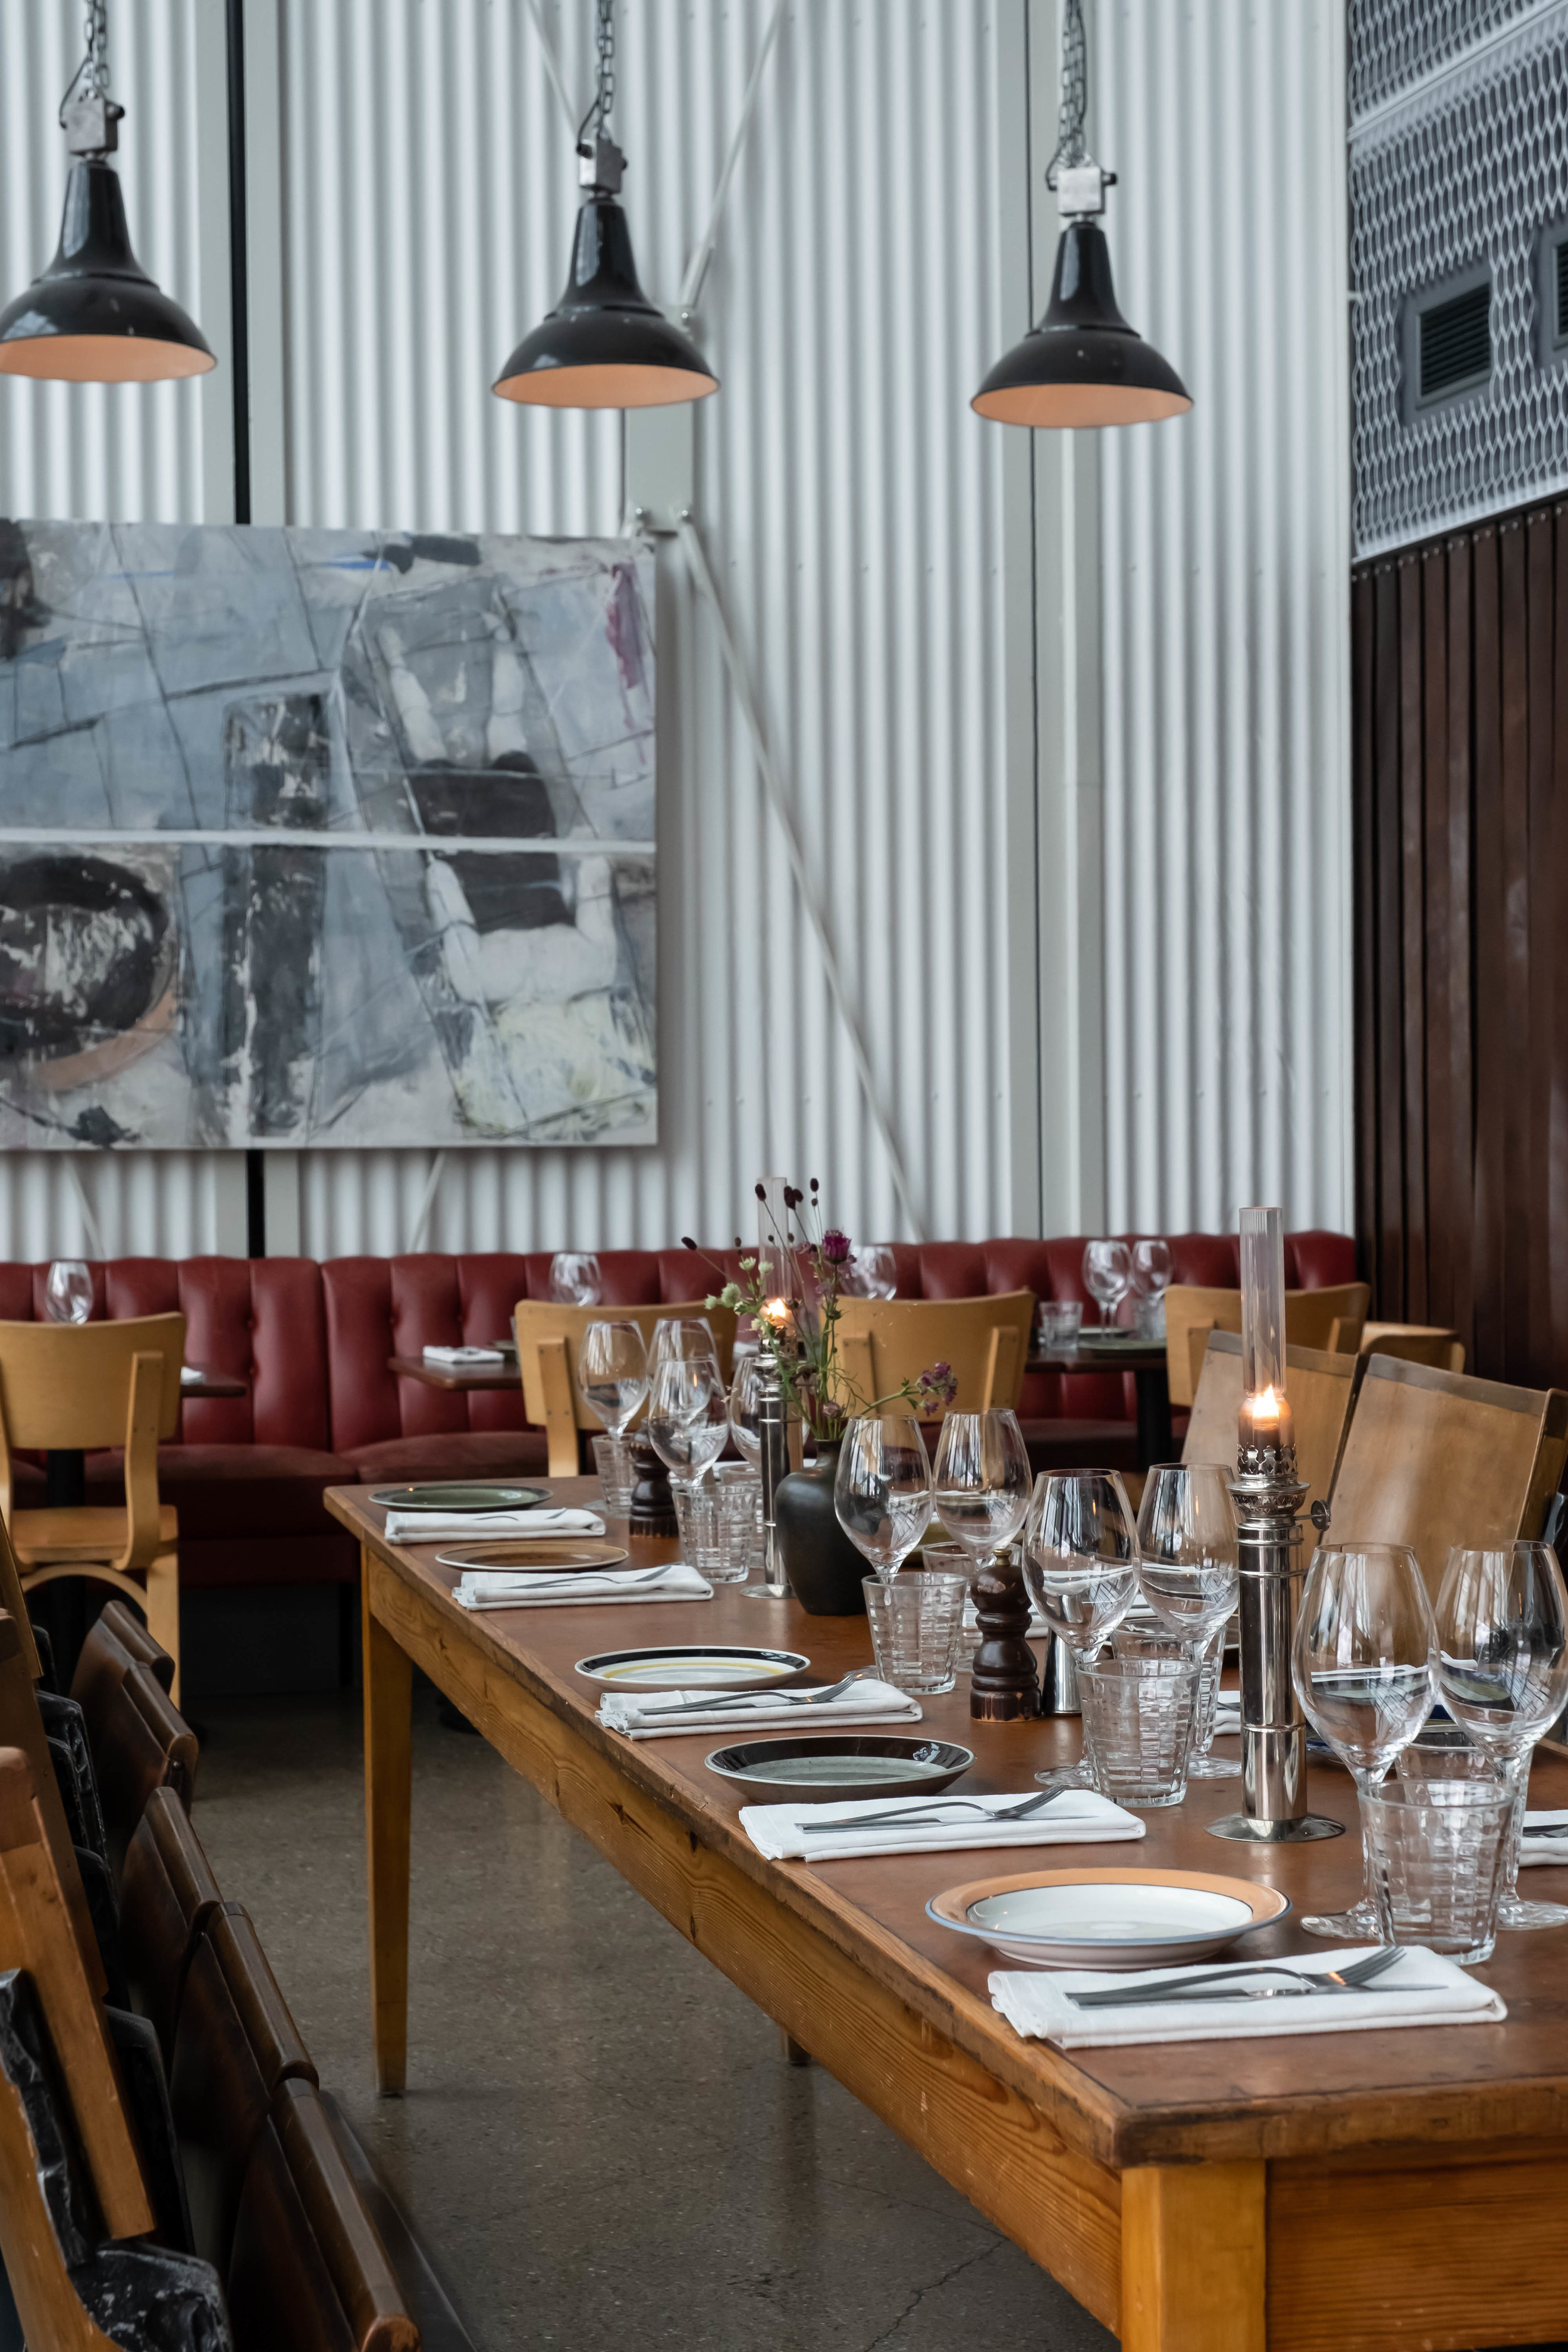 ROSE & IVY Journal Unique Spaces | Oaxen Slip A Rustic Nautical Restaurant in Stockholm